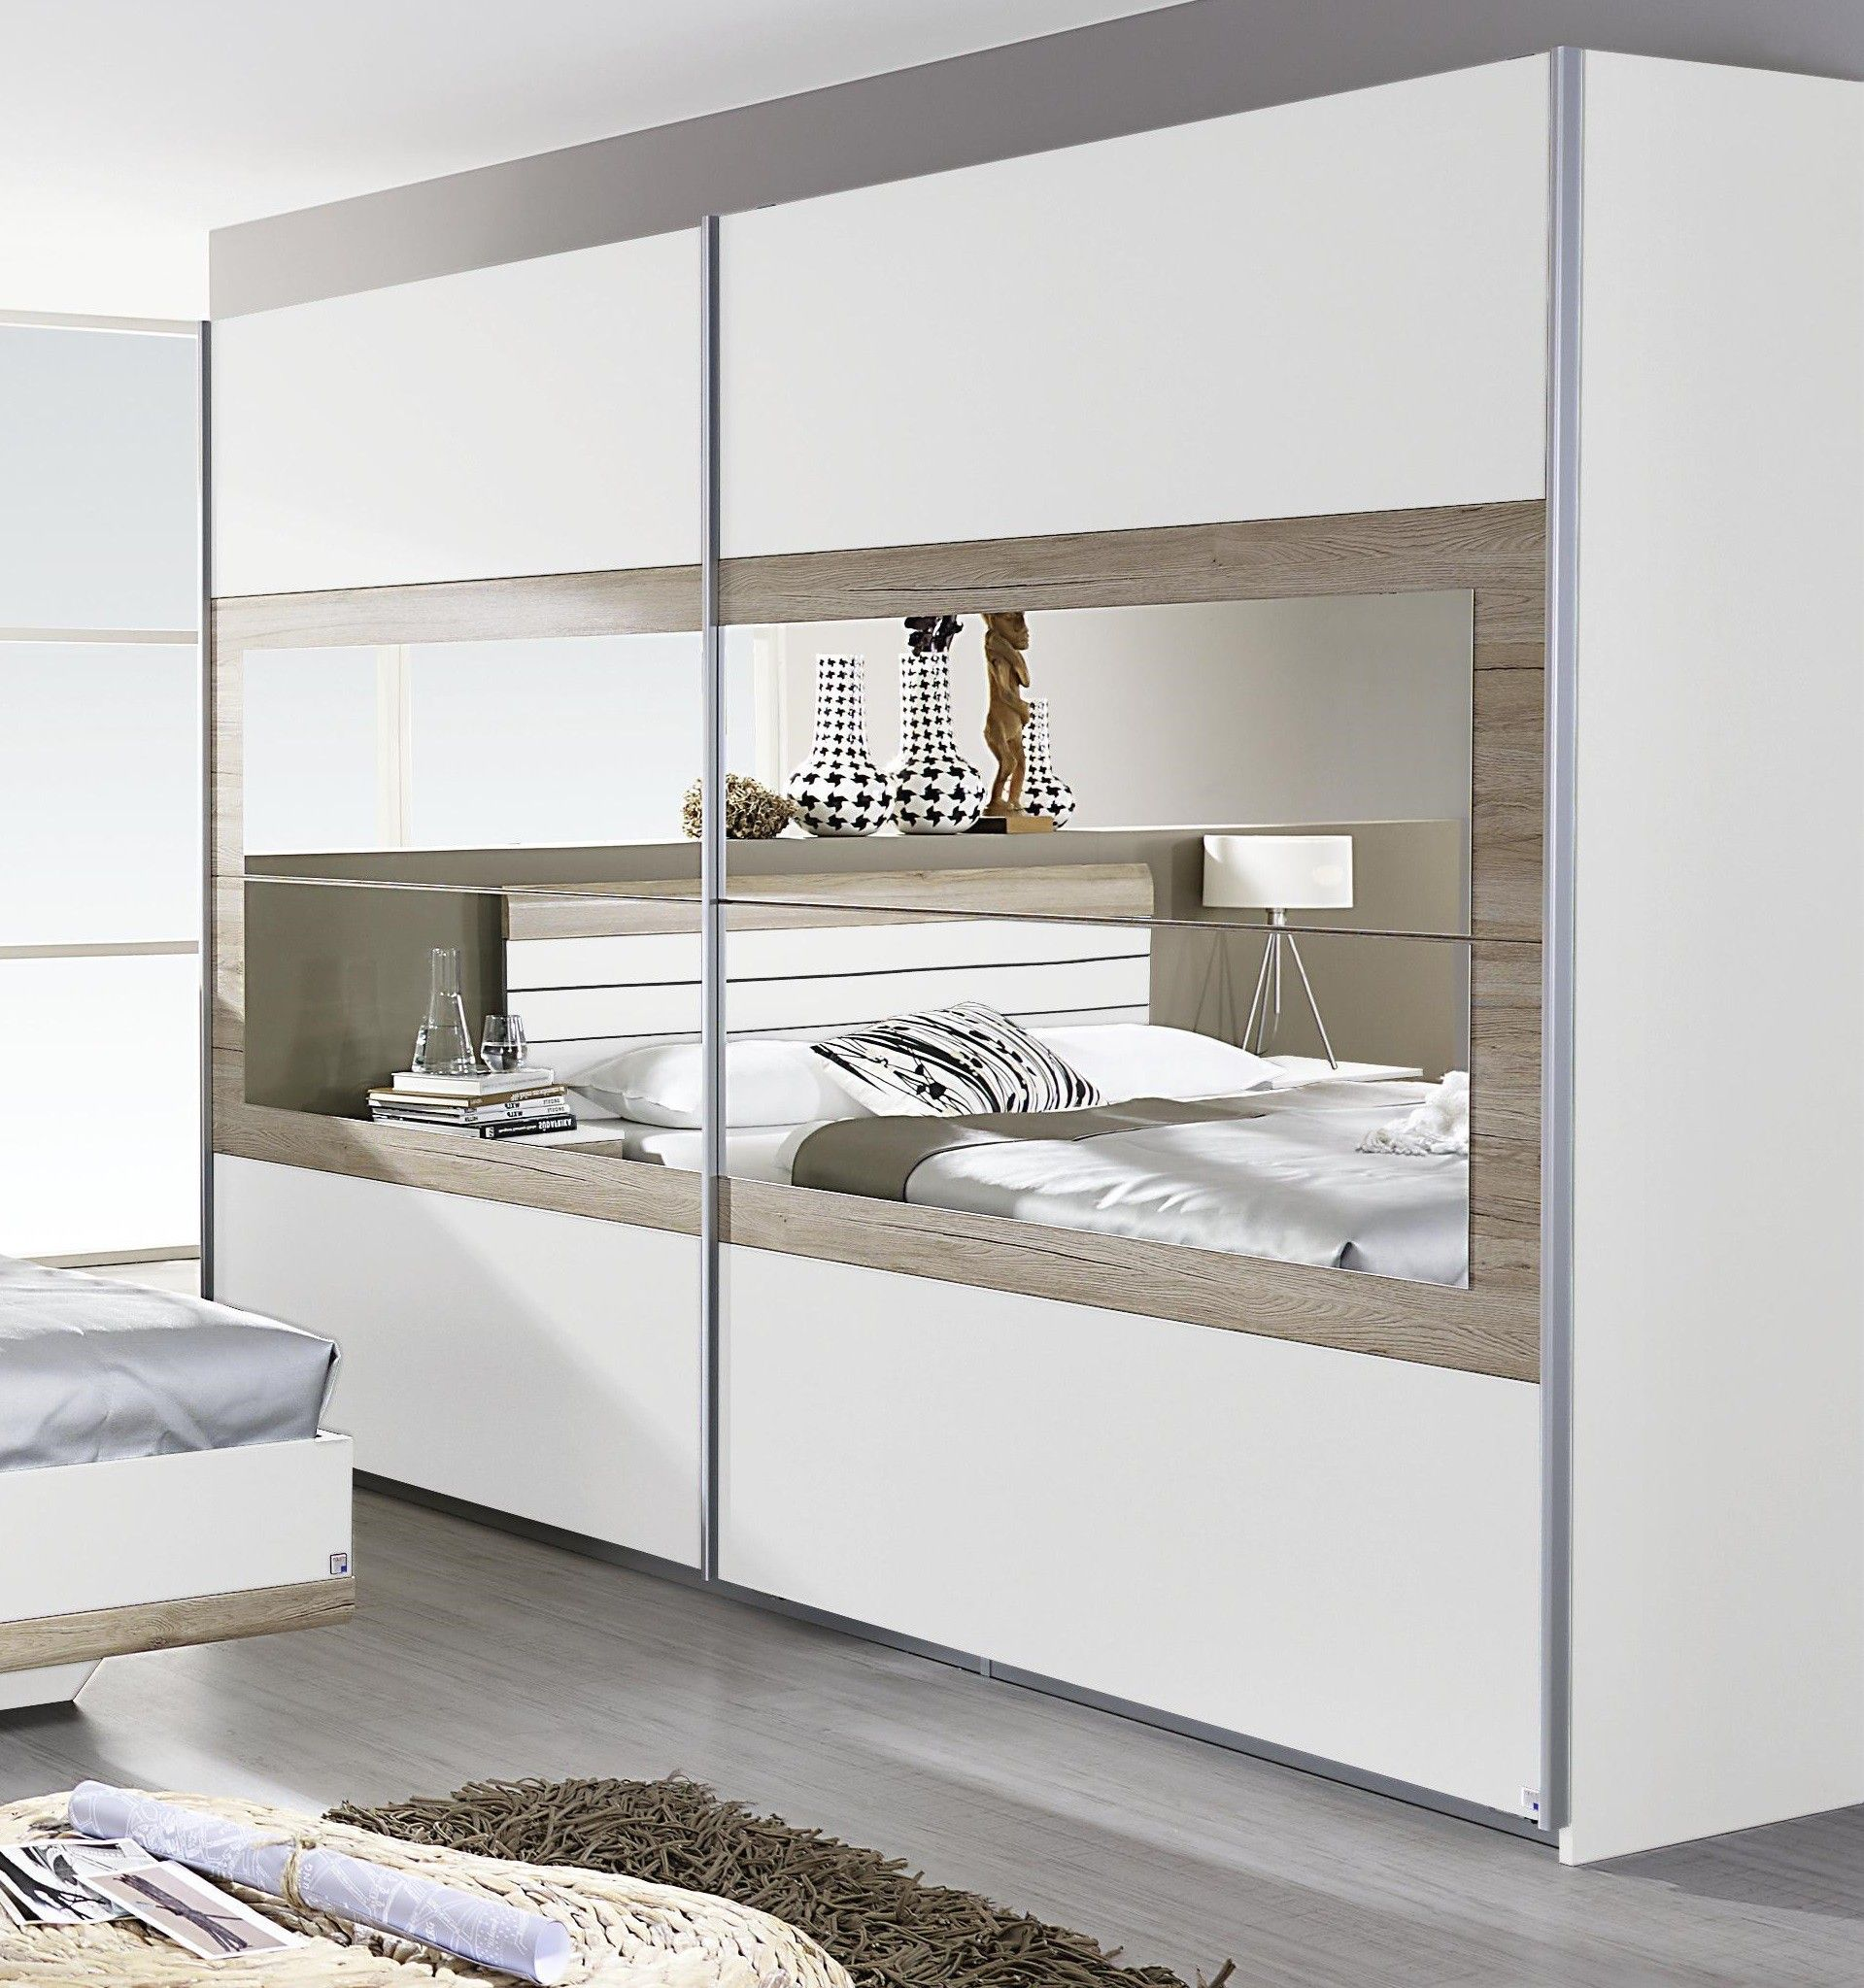 armoire contemporaine 2 portes coulissantes 271 cm blanche ch ne clair tamara. Black Bedroom Furniture Sets. Home Design Ideas